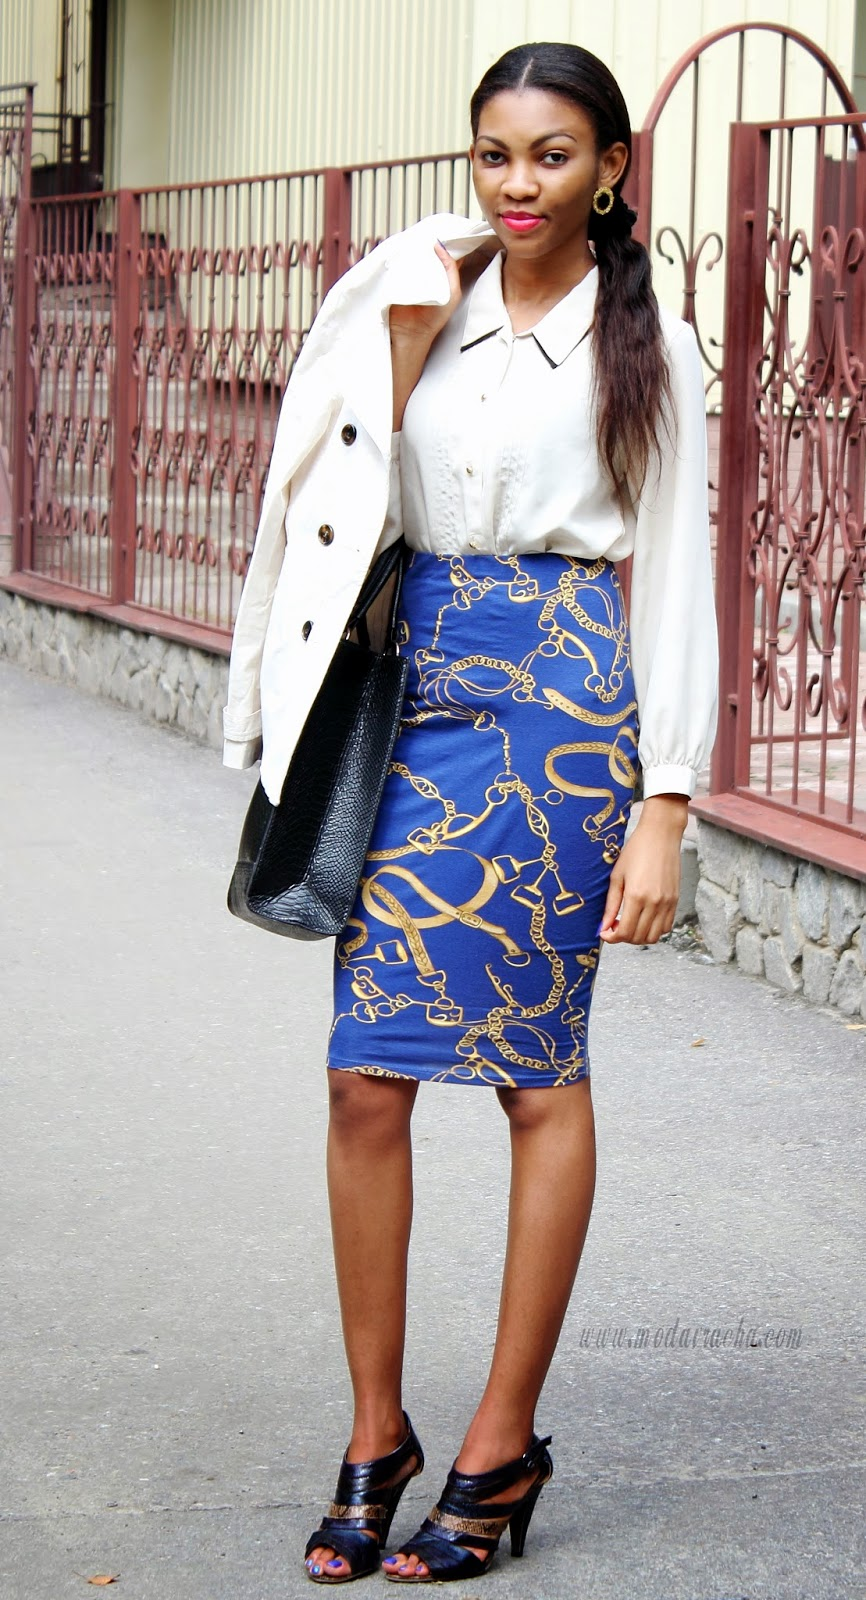 Black Pencil Skirt Outfit Ideas 2014-2015 | Fashion Trends 2016-2017